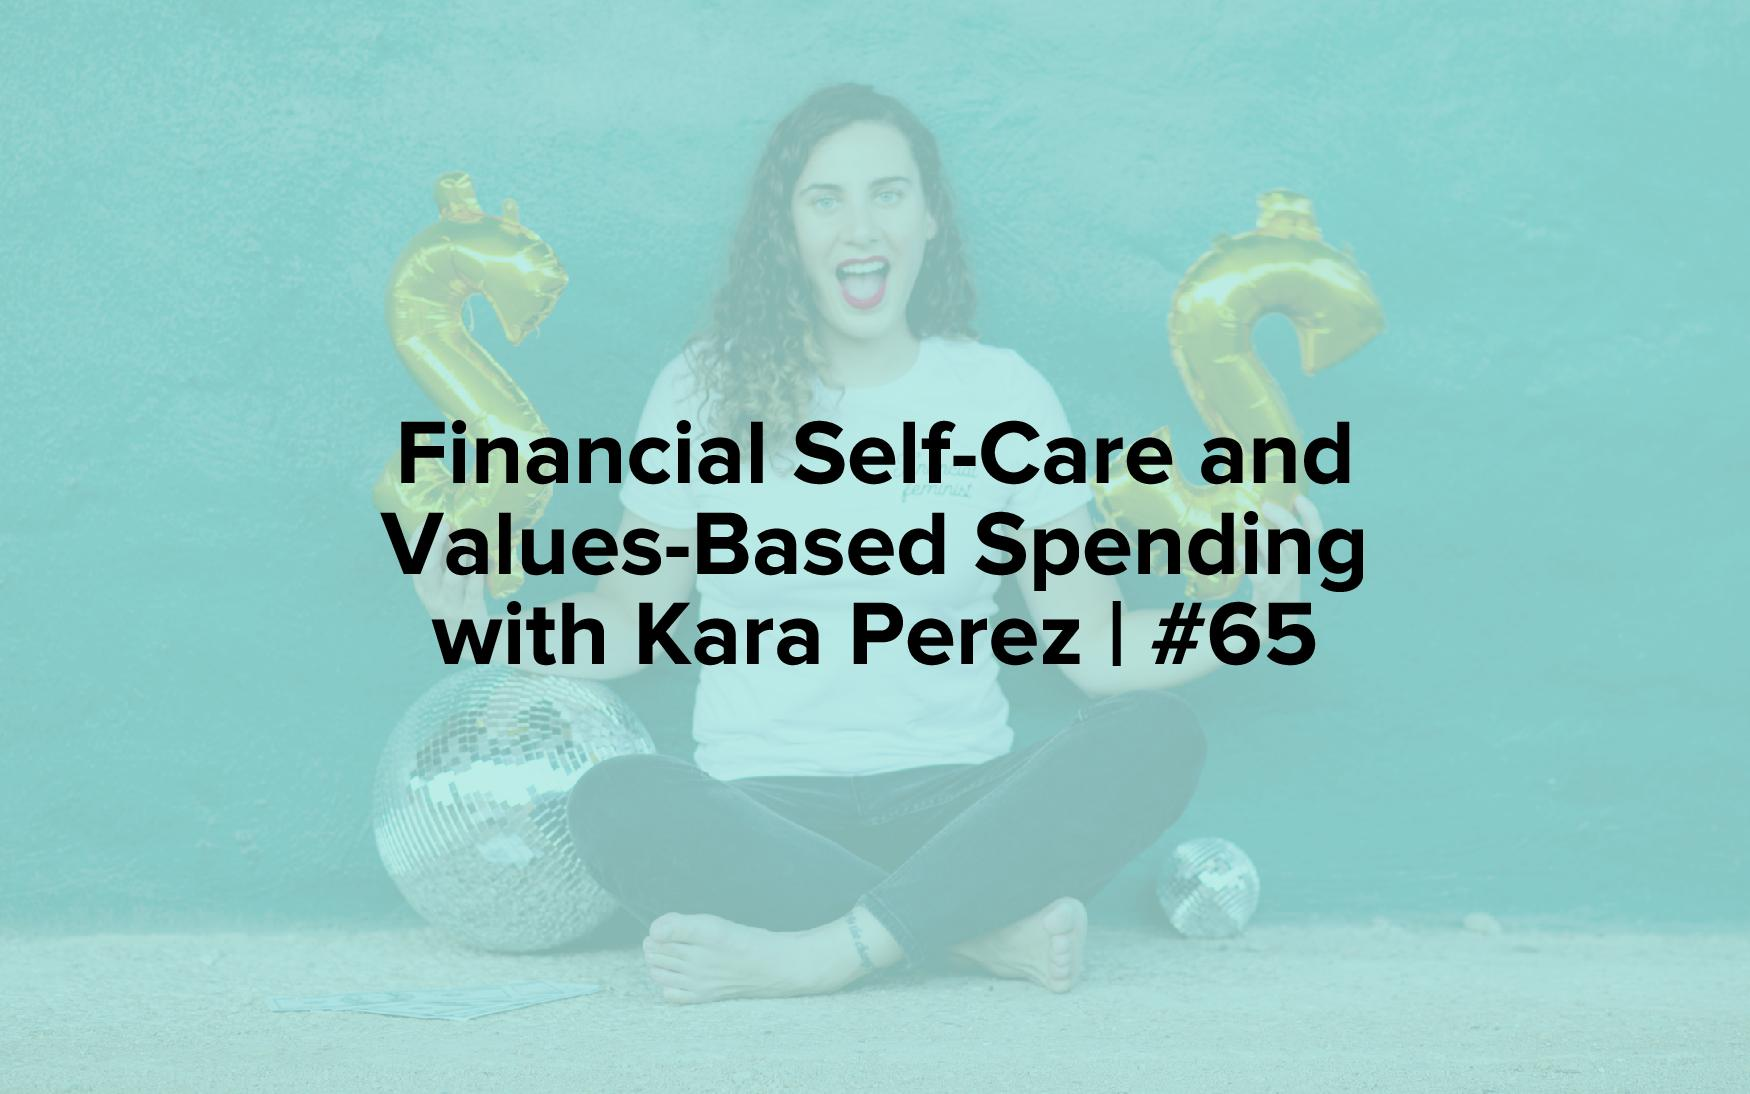 """Image text reads, """"Financial Self-Care and Values-Based Spending with Kara Perez 